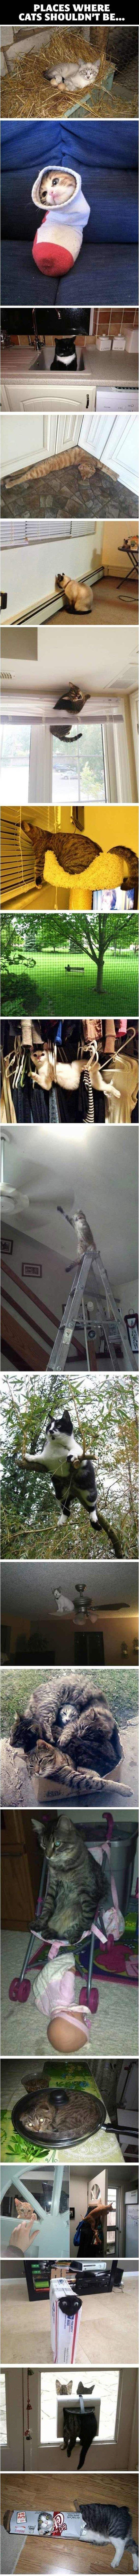 Cats In Places They Shouldnt Be